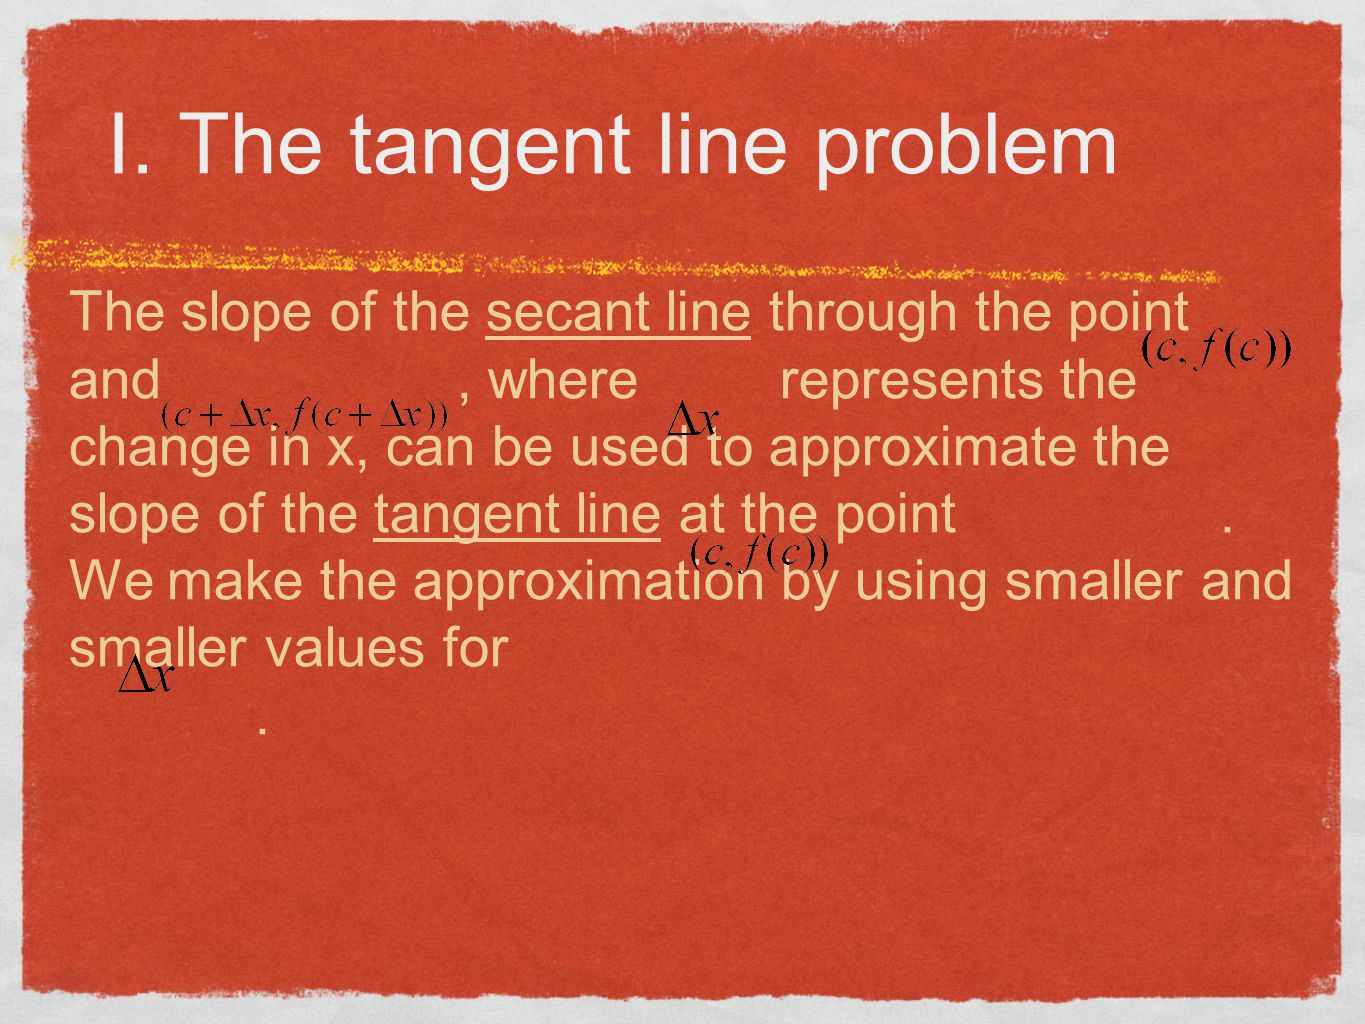 I. The tangent line problem The slope of the secant line through the point and, where represents the change in x, can be used to approximate the slope